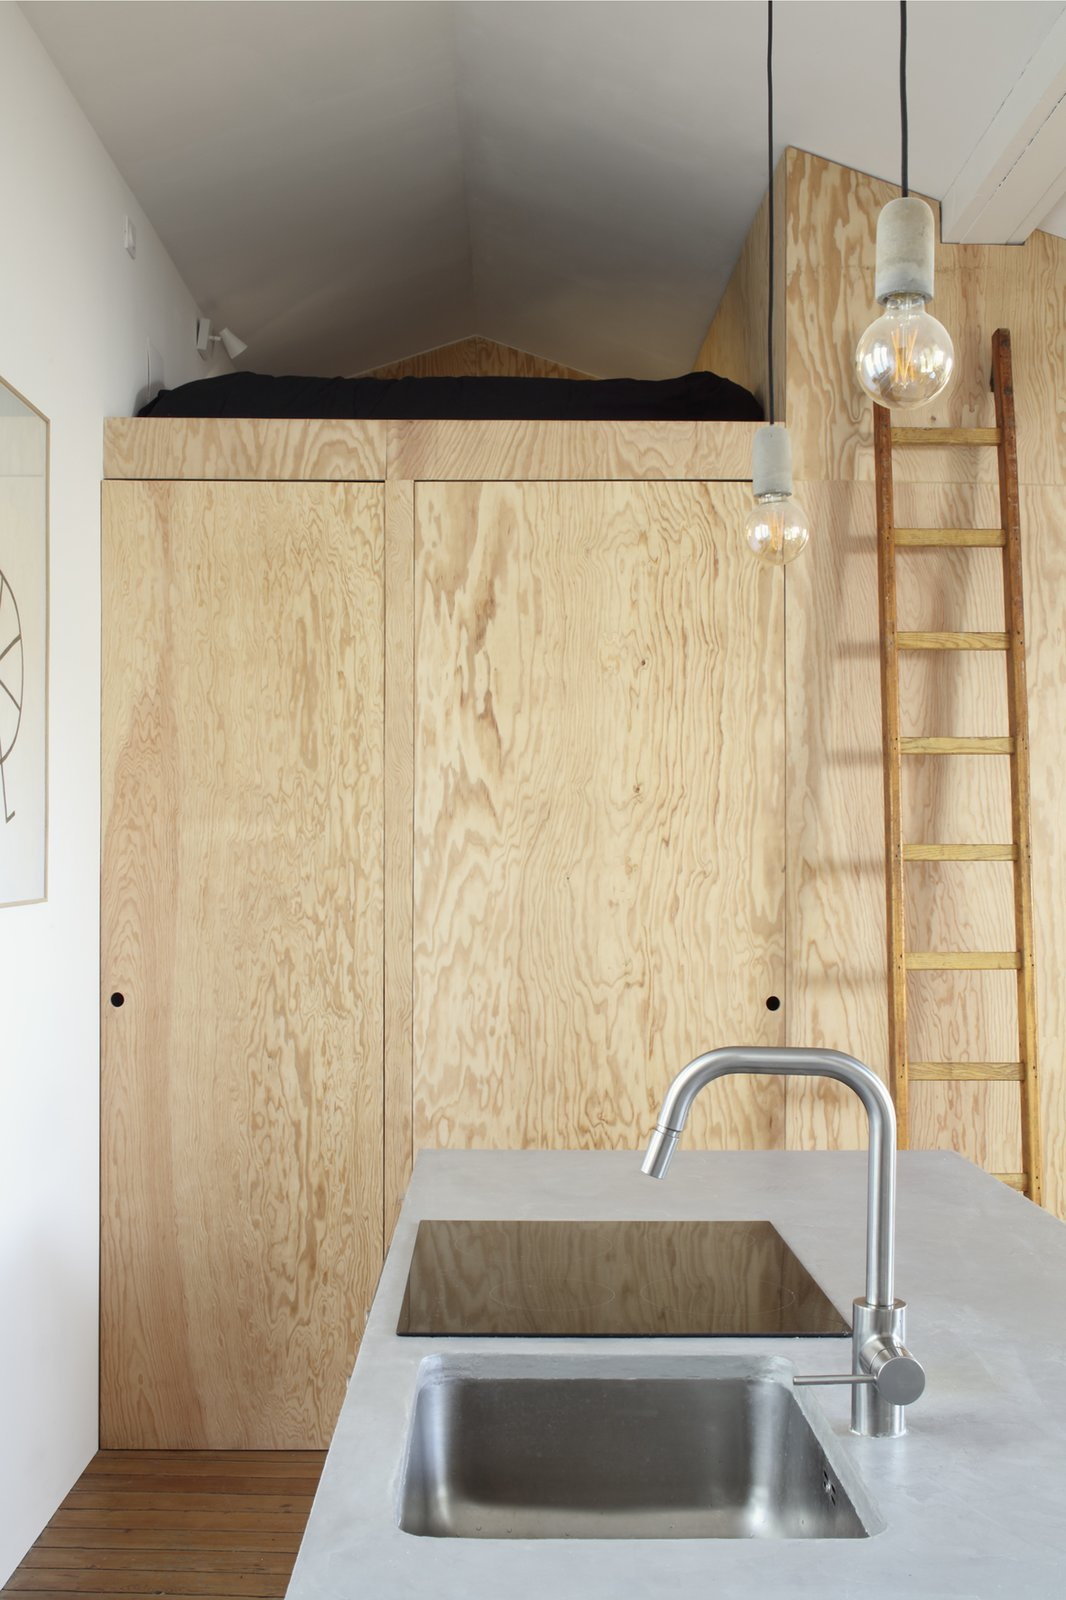 Clever Storage Abounds in This Tiny, Pine-Wrapped Apartment in France